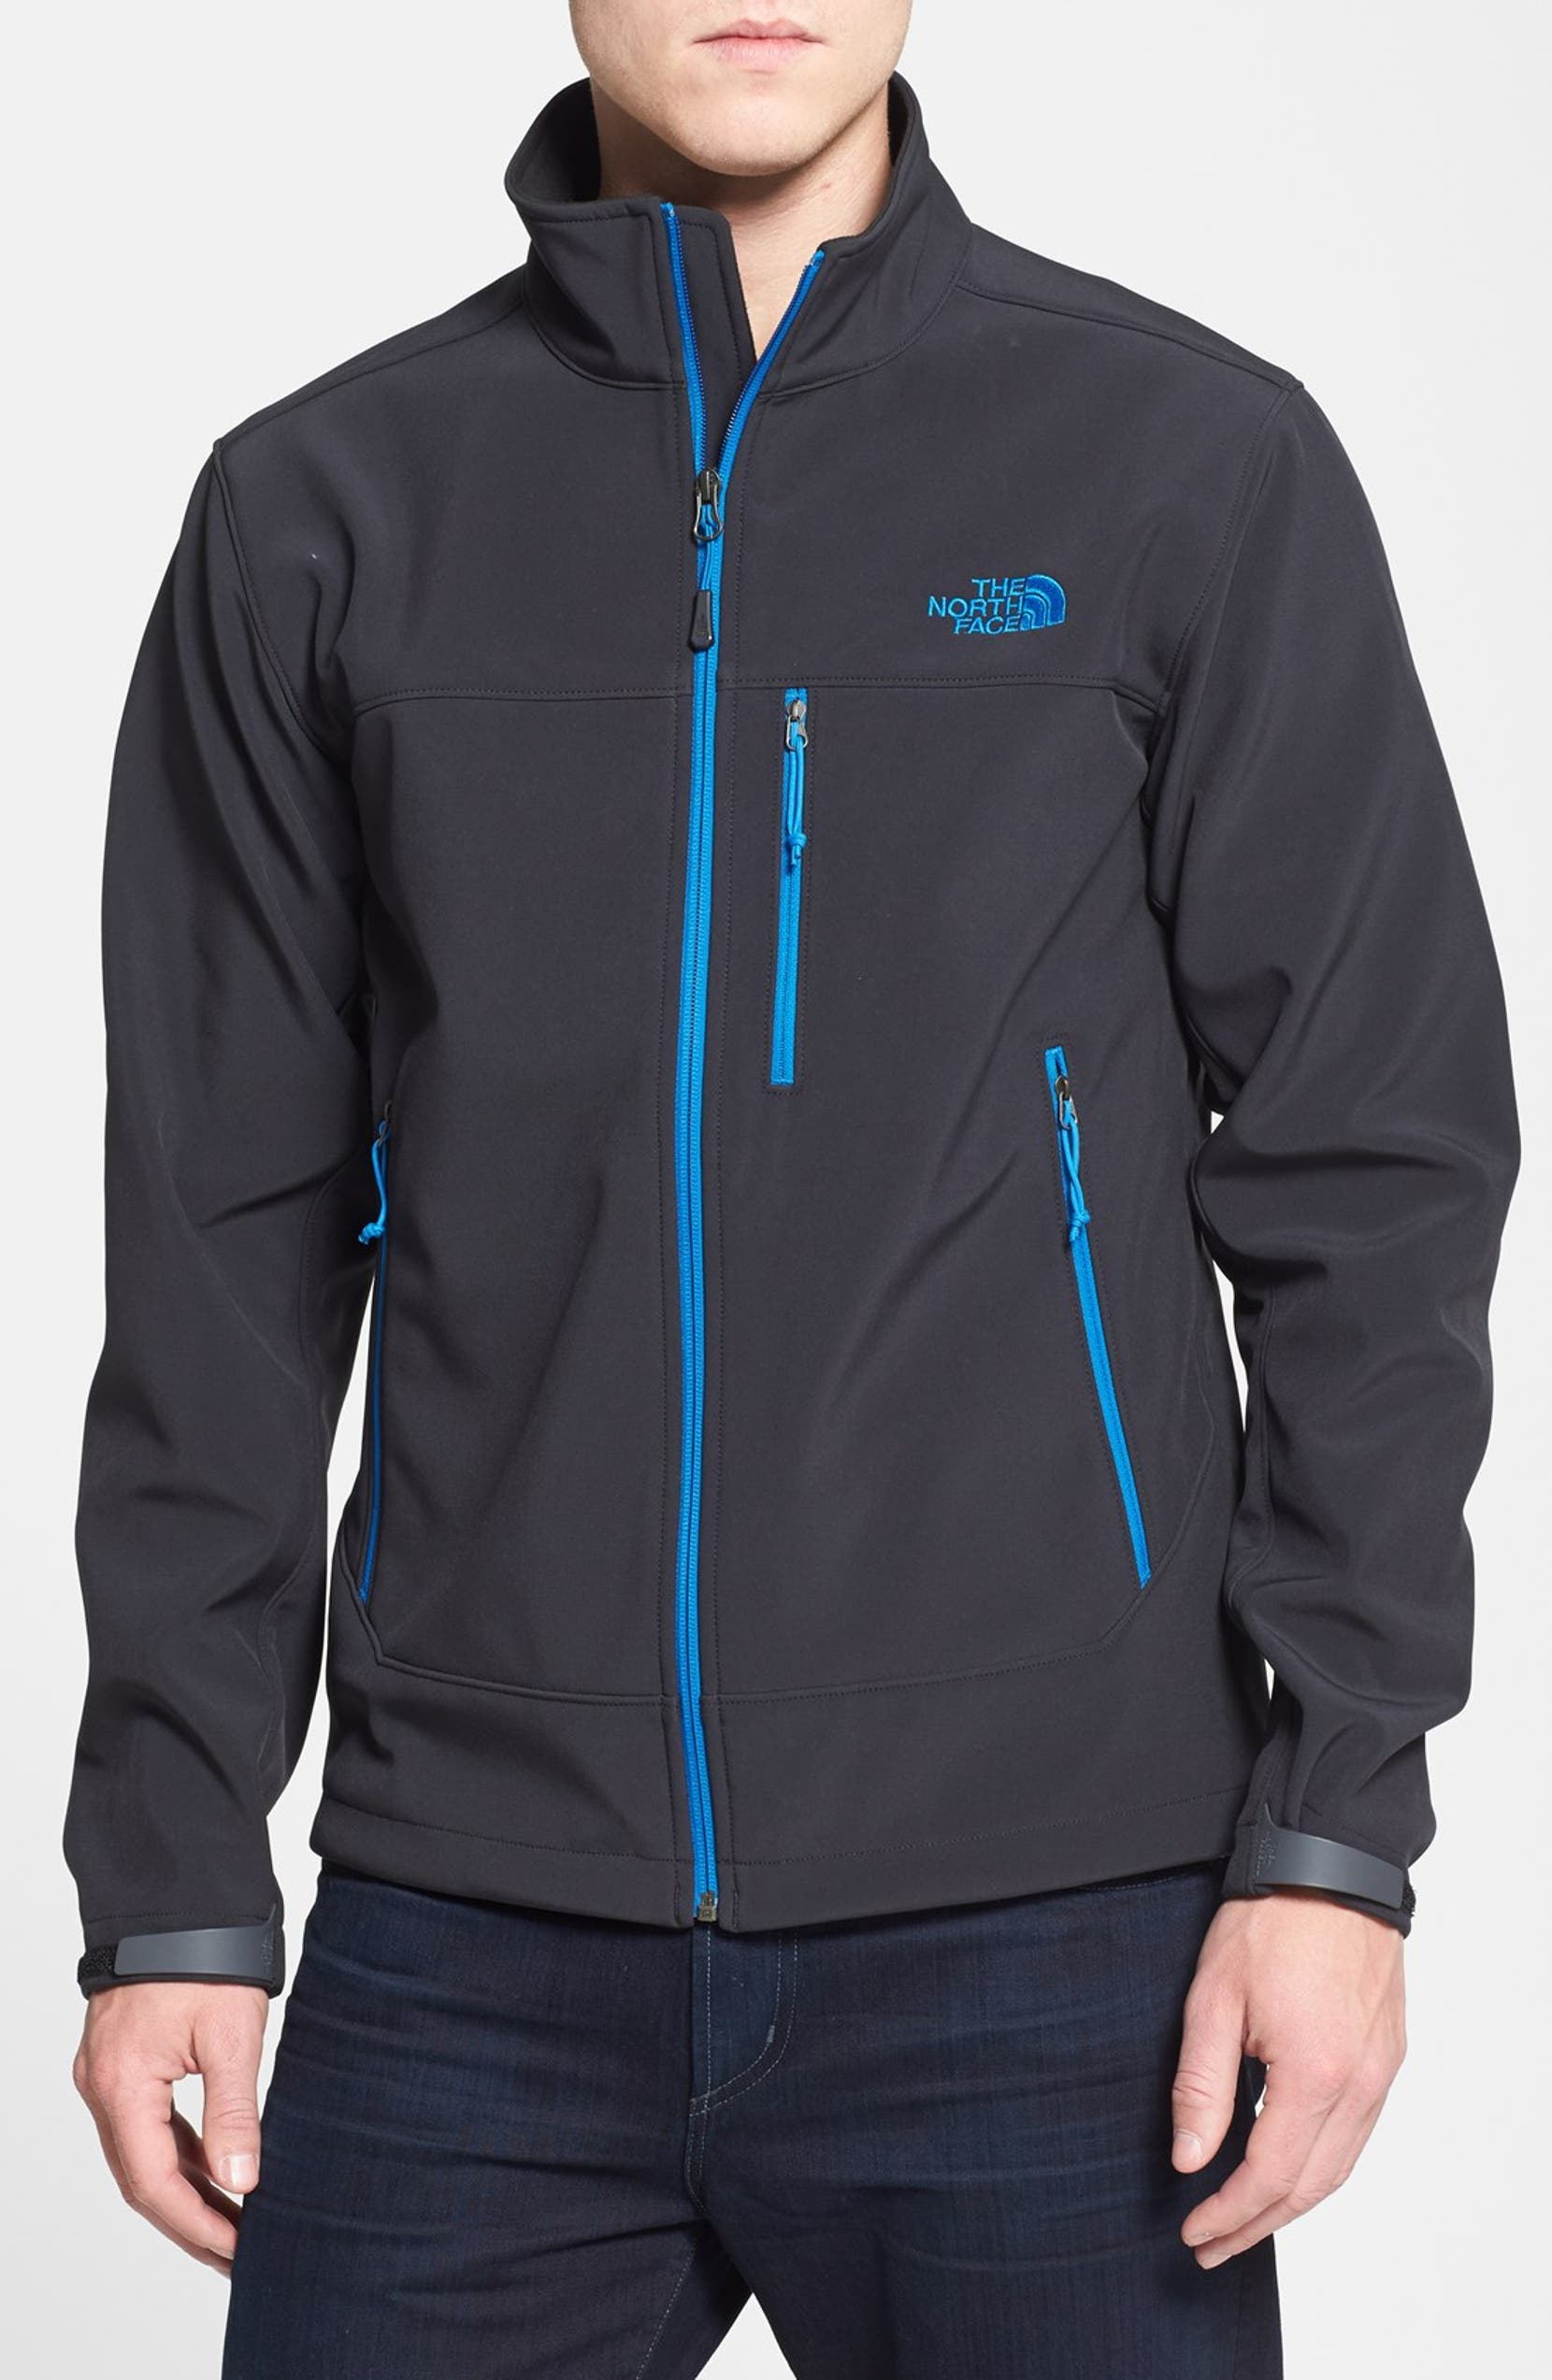 2f9324d997 The North Face  Apex Bionic  ClimateBlock™ Windproof   Water Resistant  Softshell Jacket